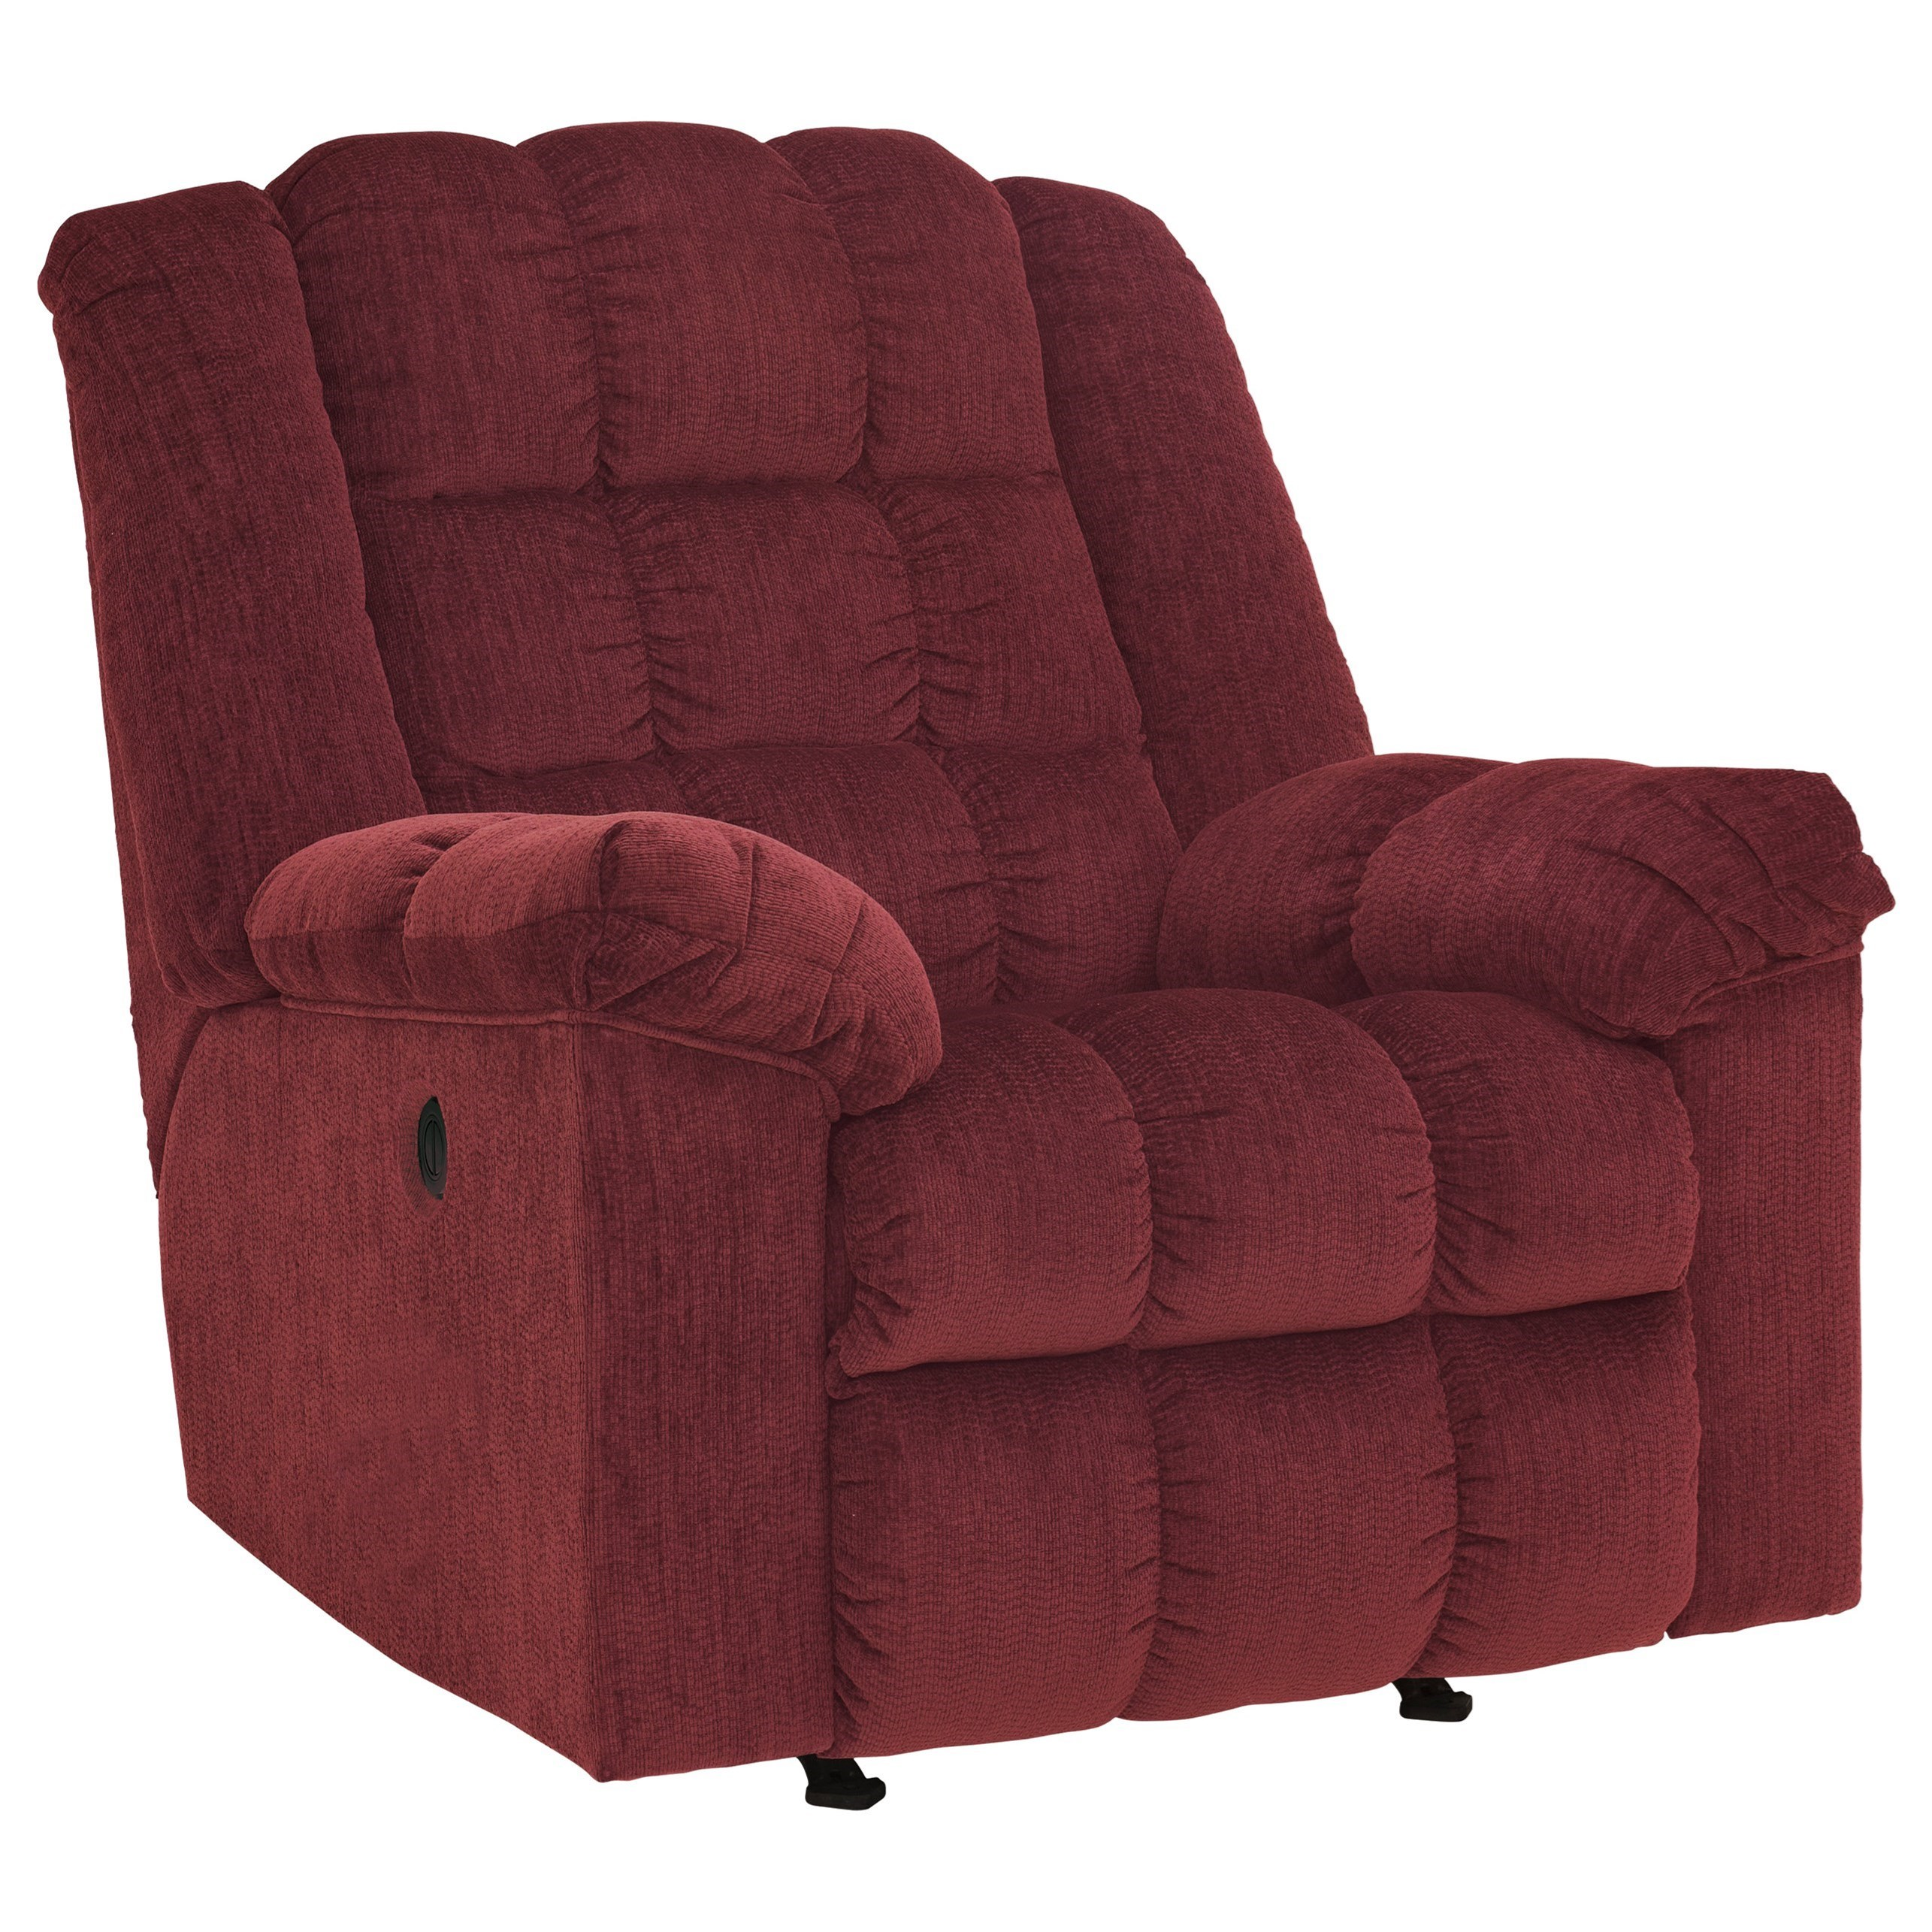 Signature Design by Ashley Ludden - Burgundy Power Rocker Recliner - Item Number: 8110698